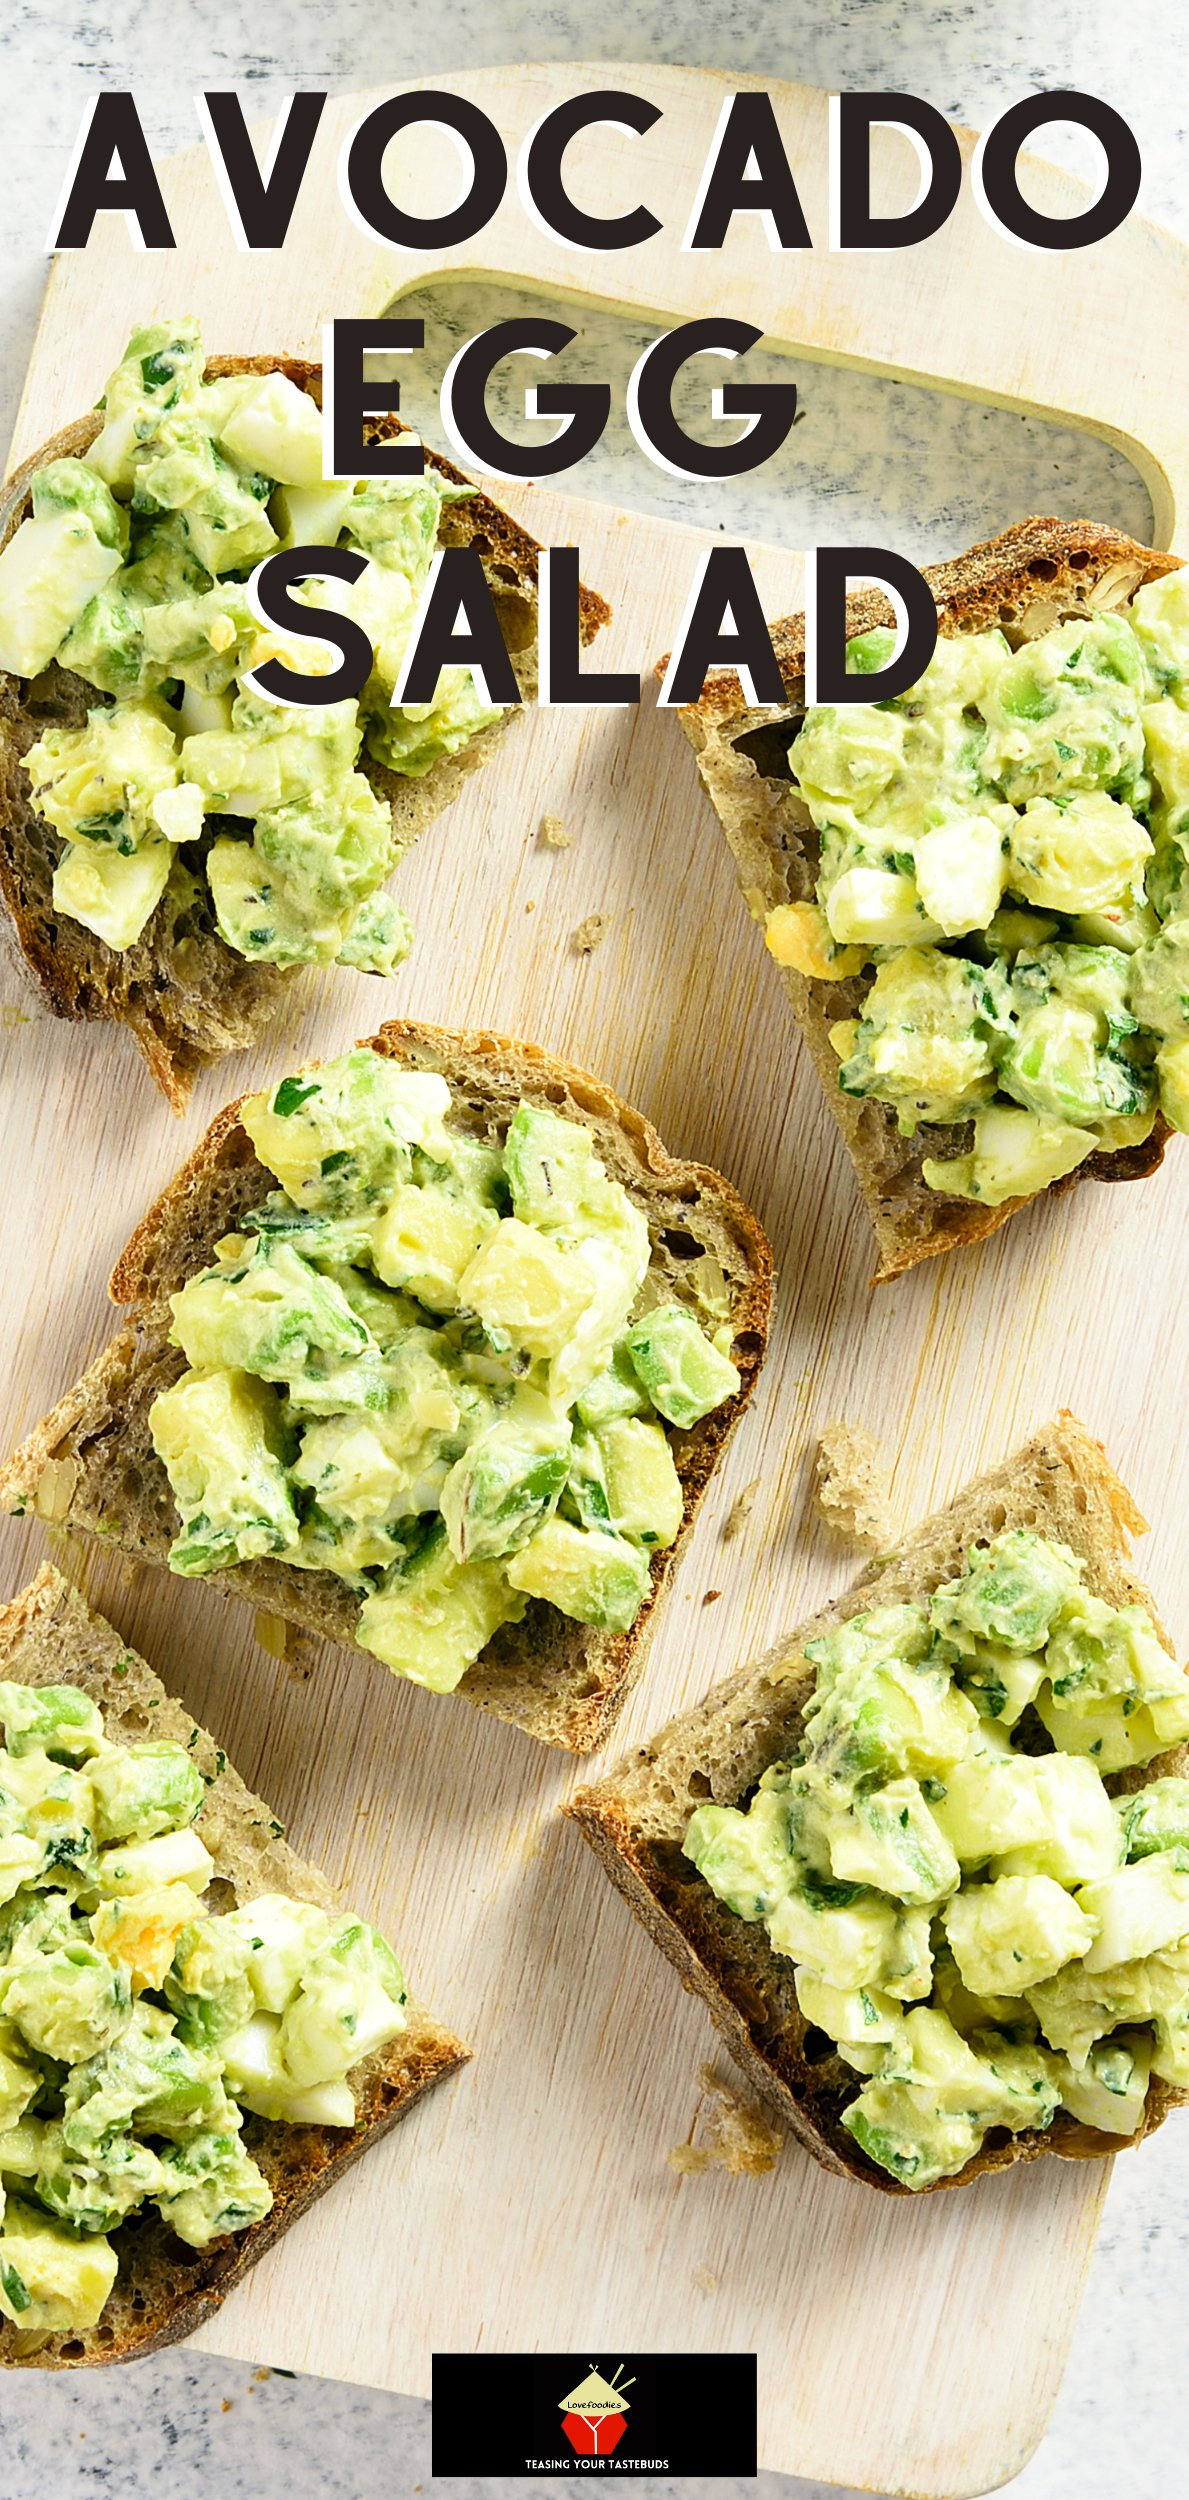 Avocado Egg Salad is a wonderfully easy recipe and very quick to make. Serve as a salad in a bowl or with some crusty bread warm from the oven. Delicious! Great for brunch, lunch or supper or party food!